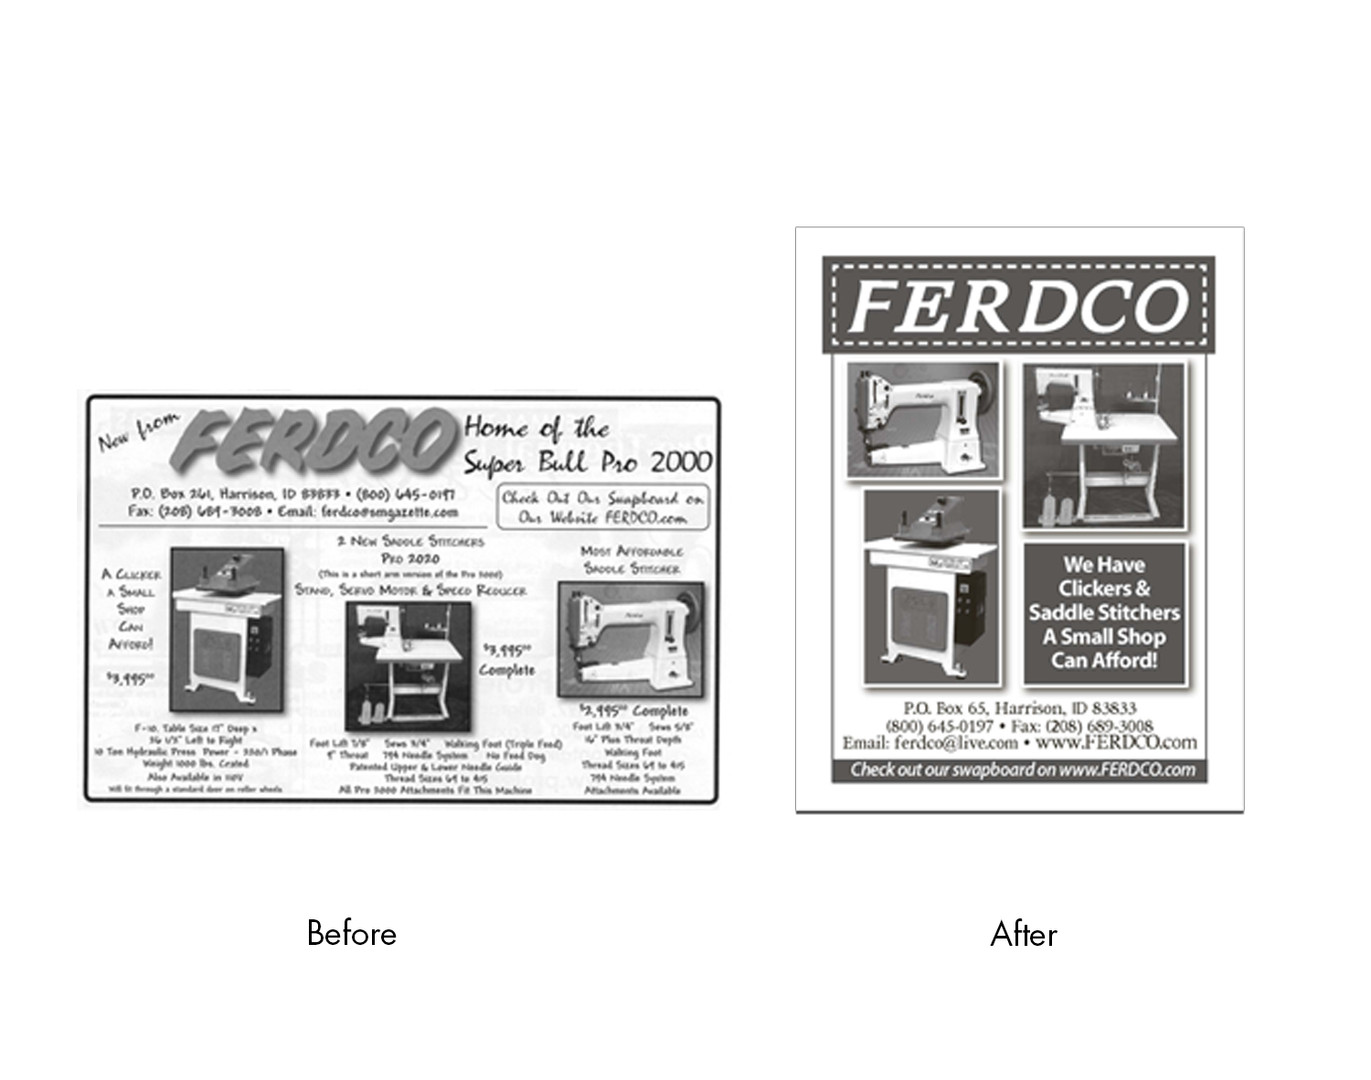 _10 BEFORE AFTER FERDCO AD.jpg